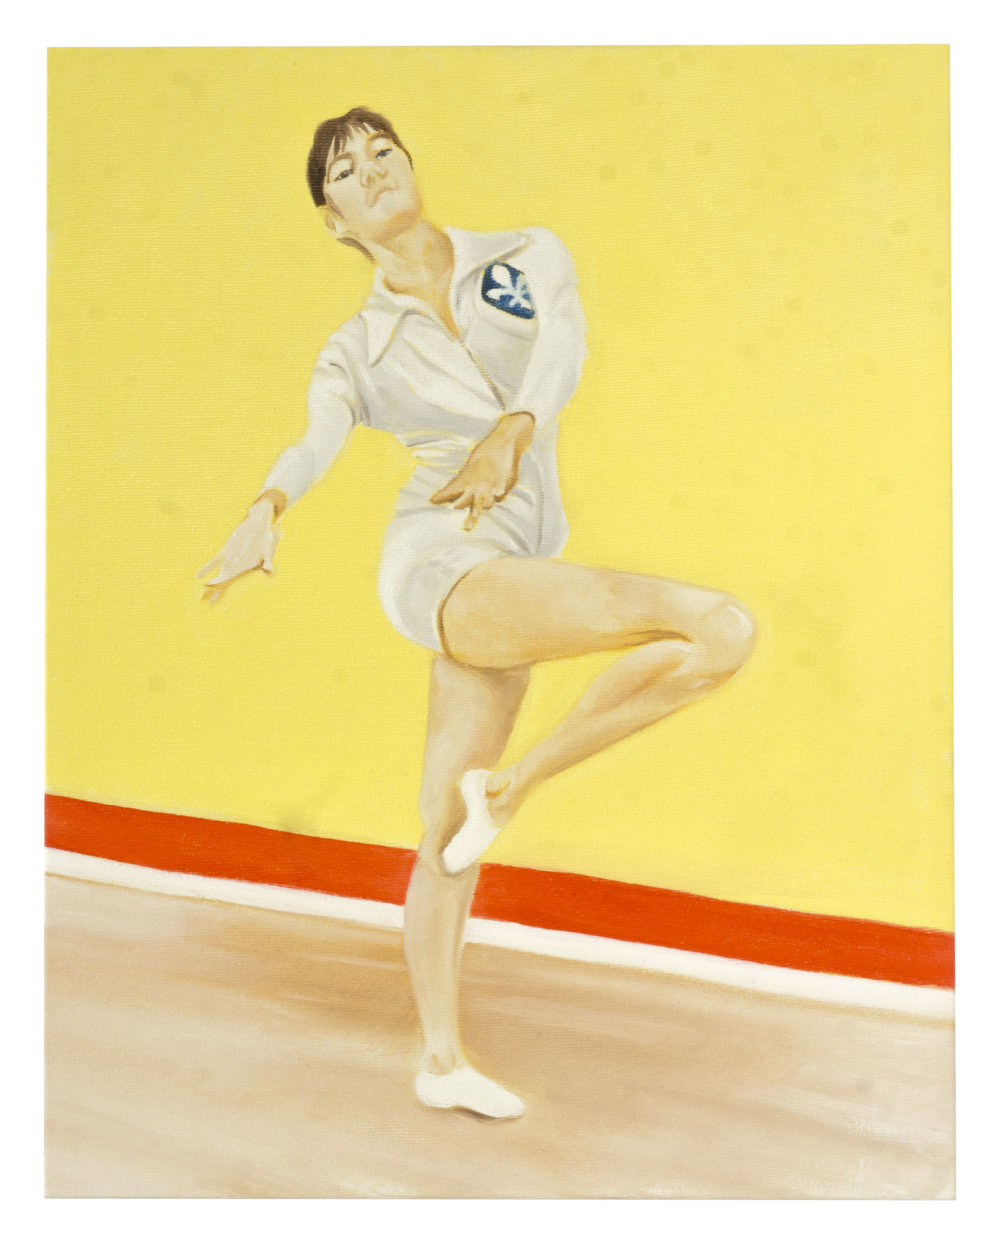 "MY MOTHER, A YOUNG GYMNAST 11"" x 14"" Oil on Canvas $300.00 